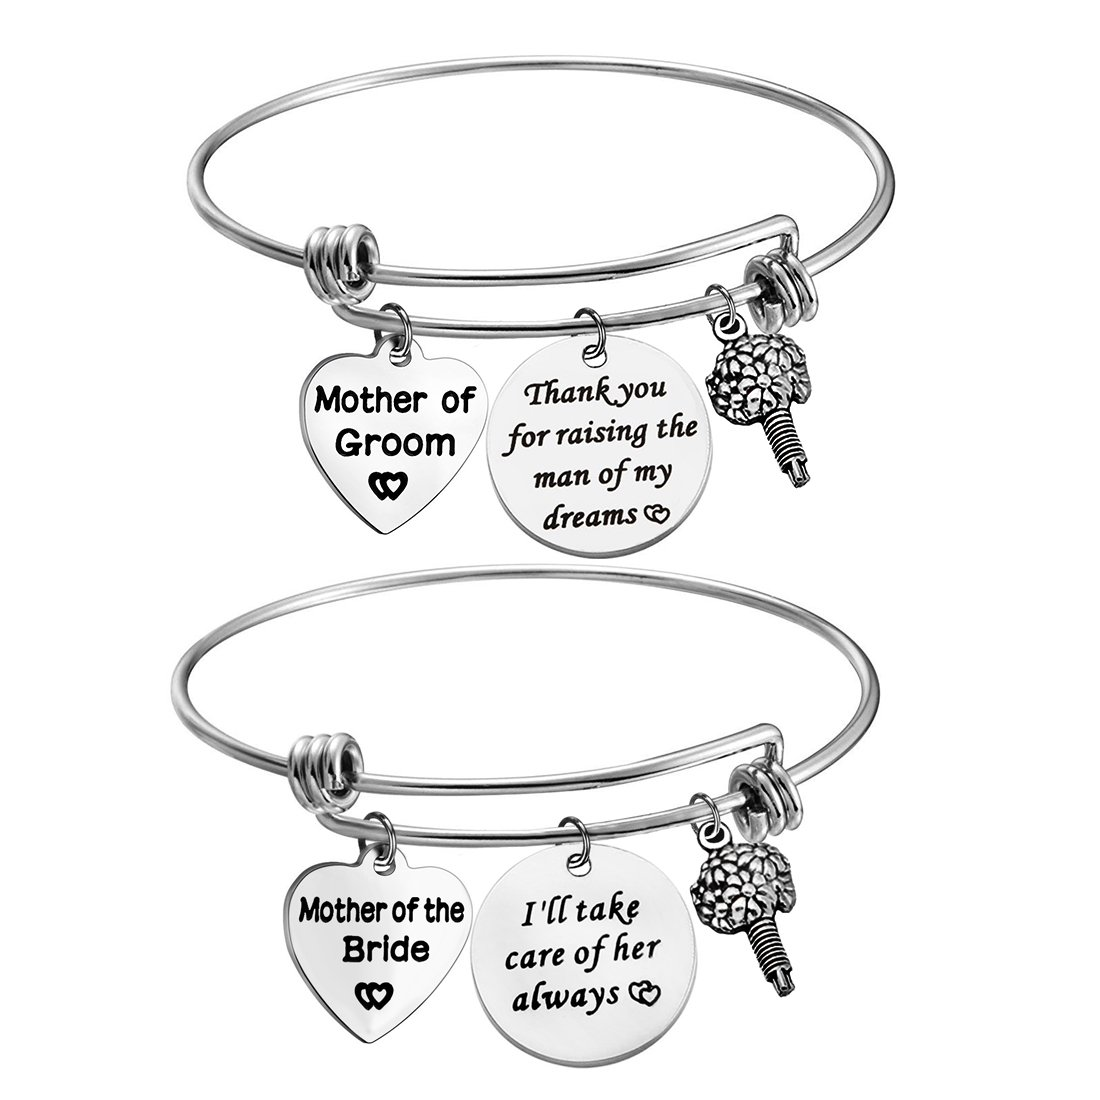 Zuo Bao Mother of the Bride or Groom Adjustable Bangle Wedding Gifts Mothers gifts Bangle bouquet (Bangle set)